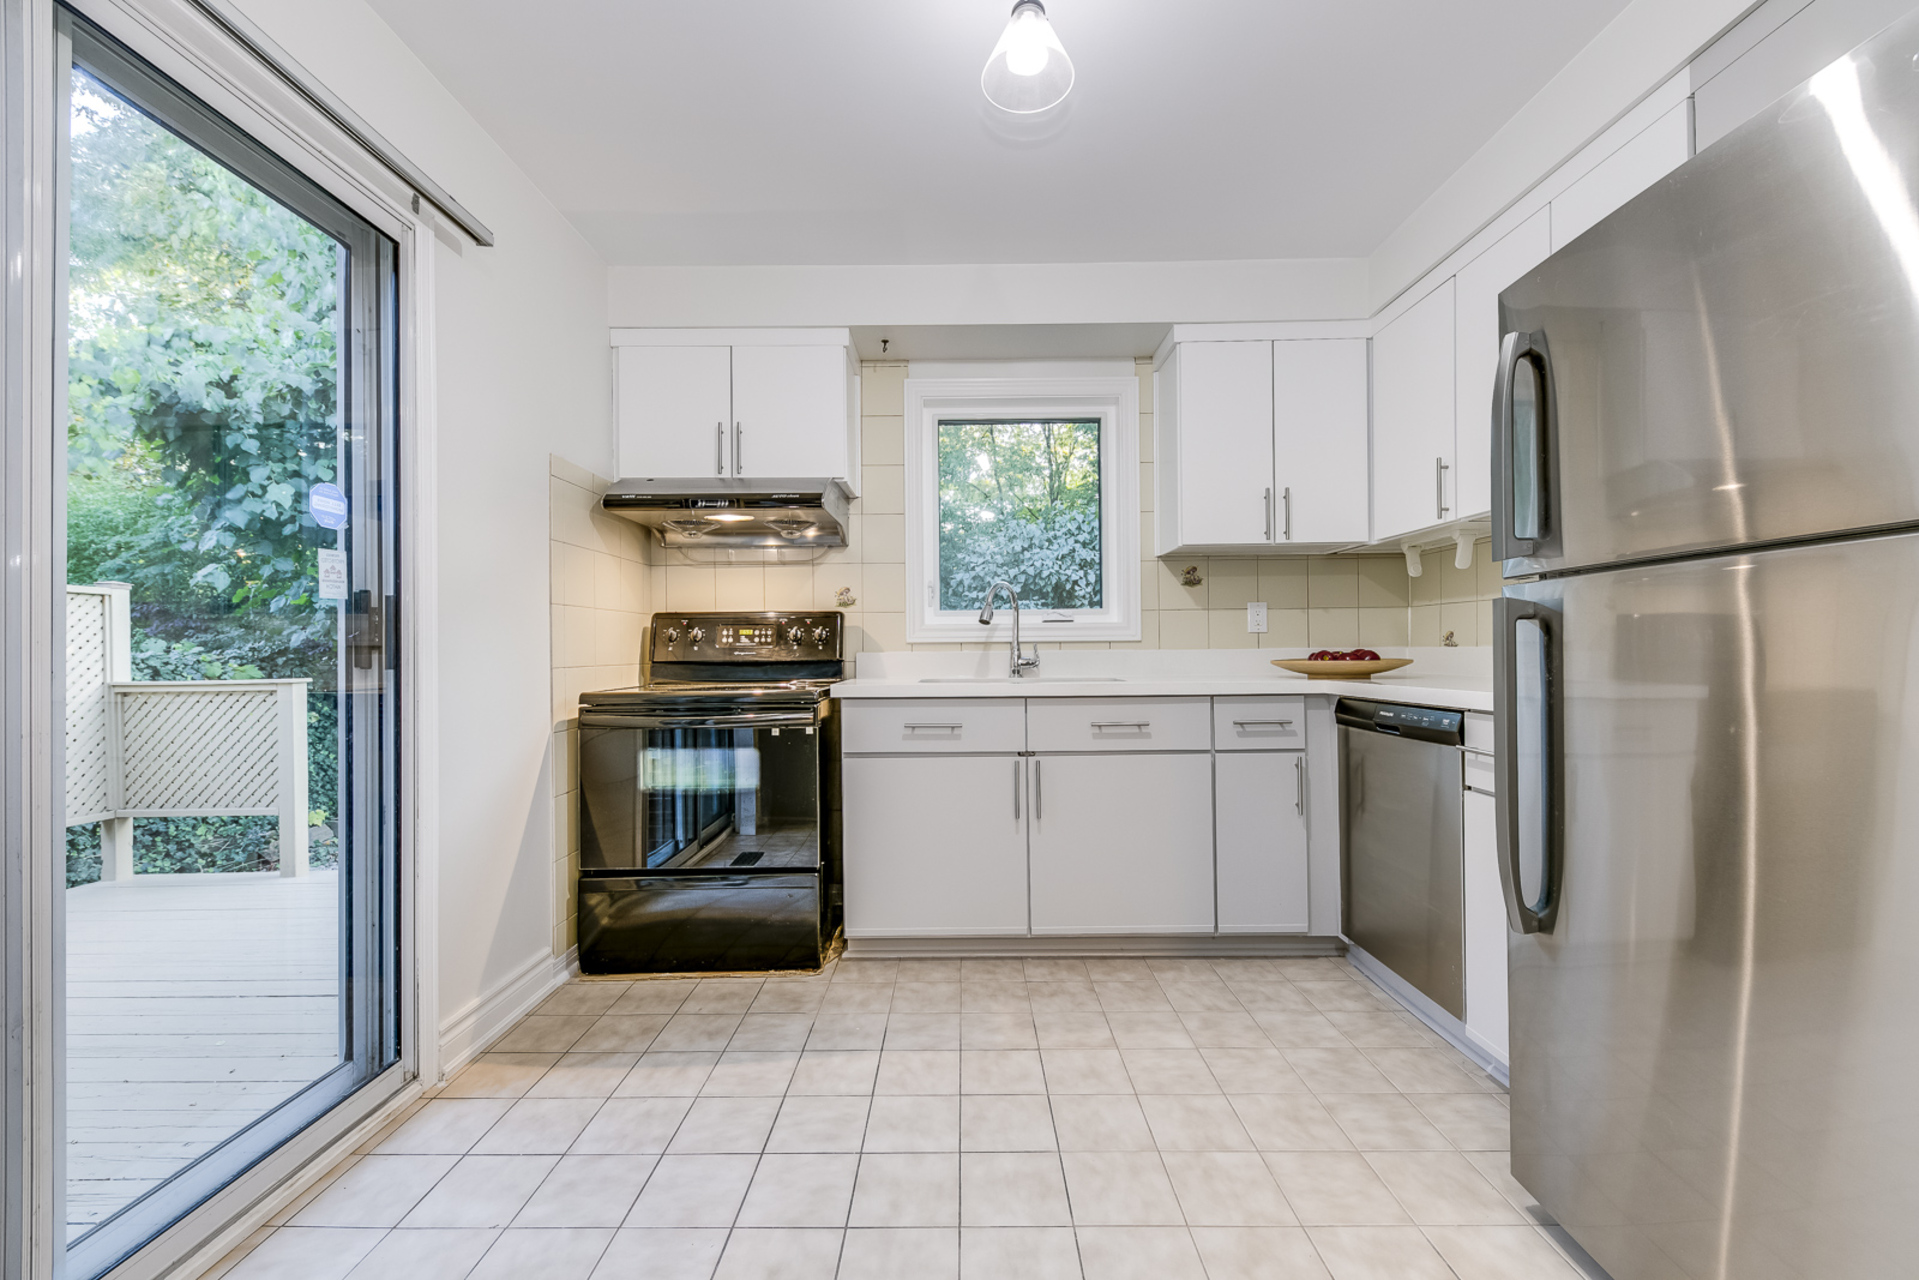 mls-19 at 4246 Wakefield Crescent, Creditview, Mississauga